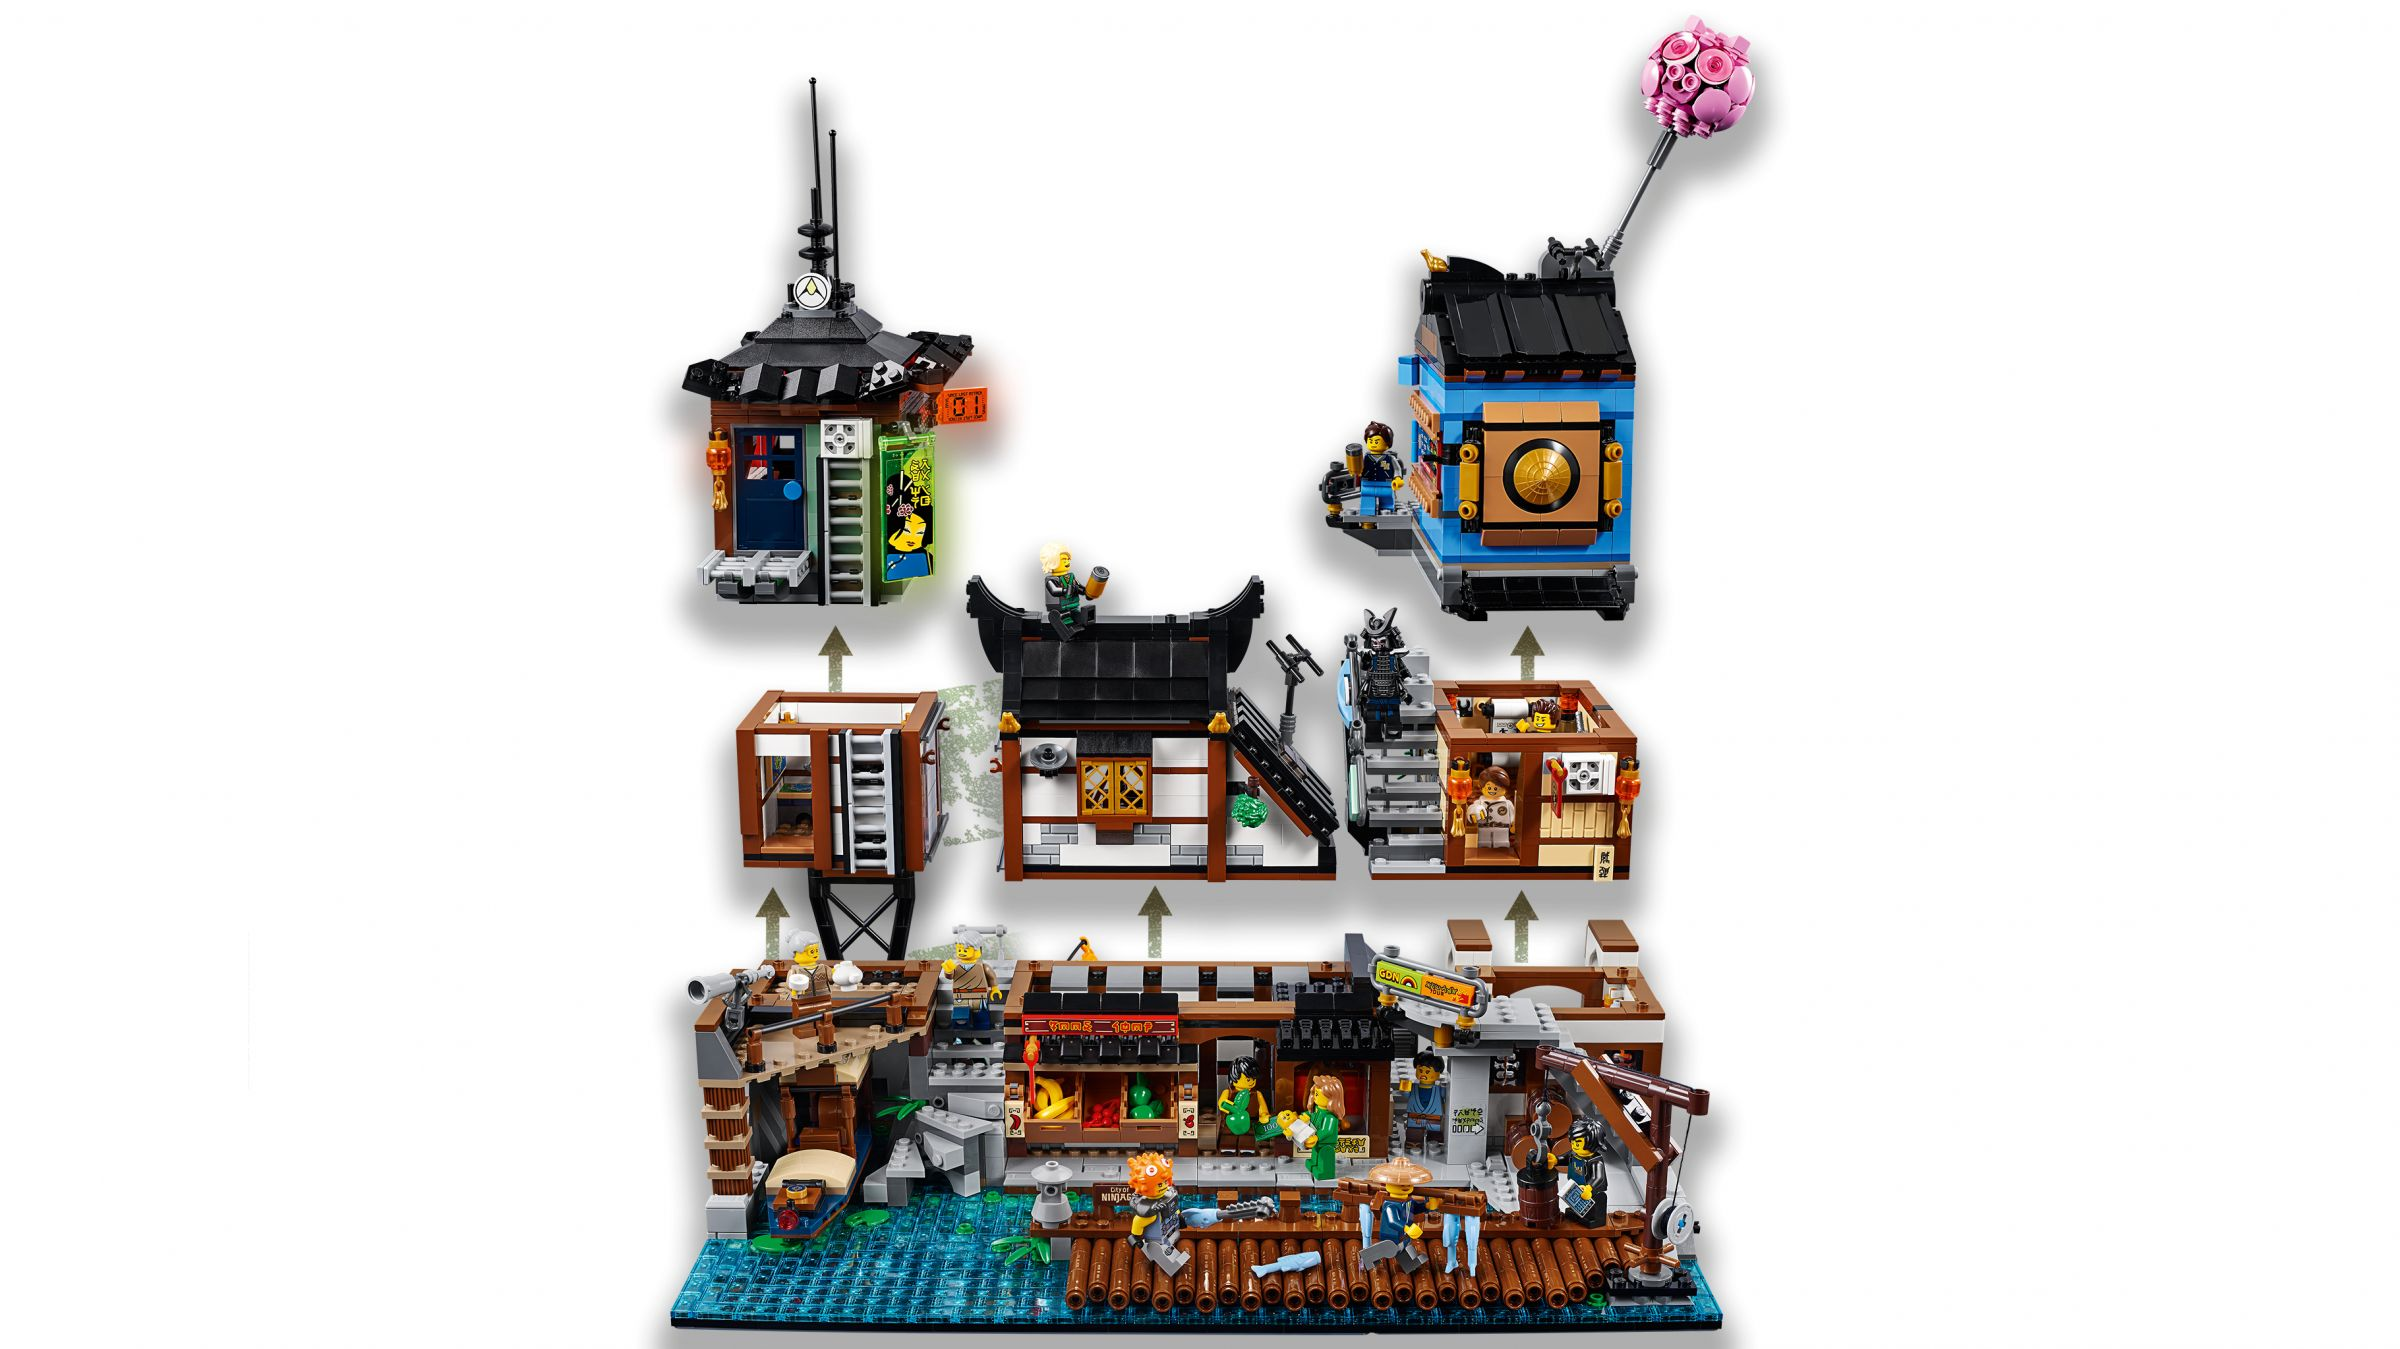 LEGO The LEGO Ninjago Movie 70657 Ninjago City Hafen LEGO_70657_Ninjago_City_Hafen_img05.jpg